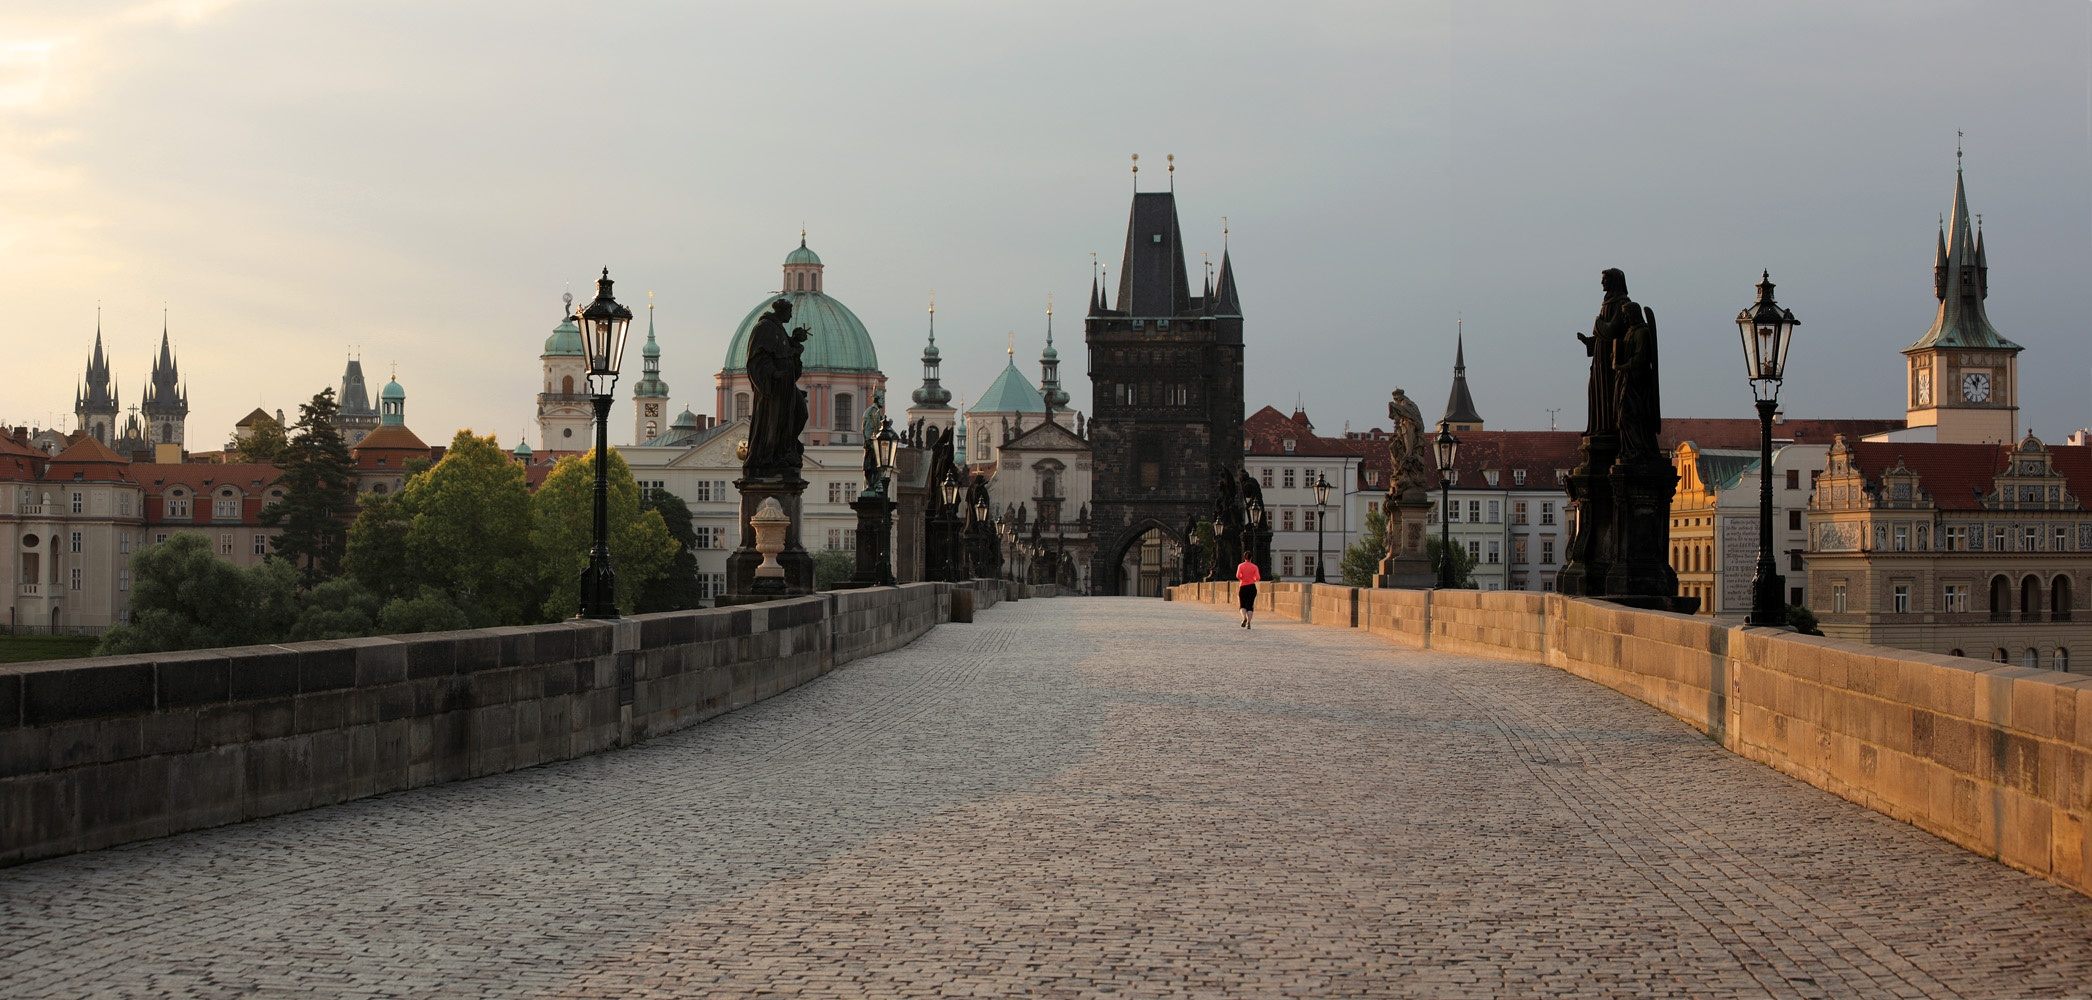 charlespanorama Charles Bridge, 